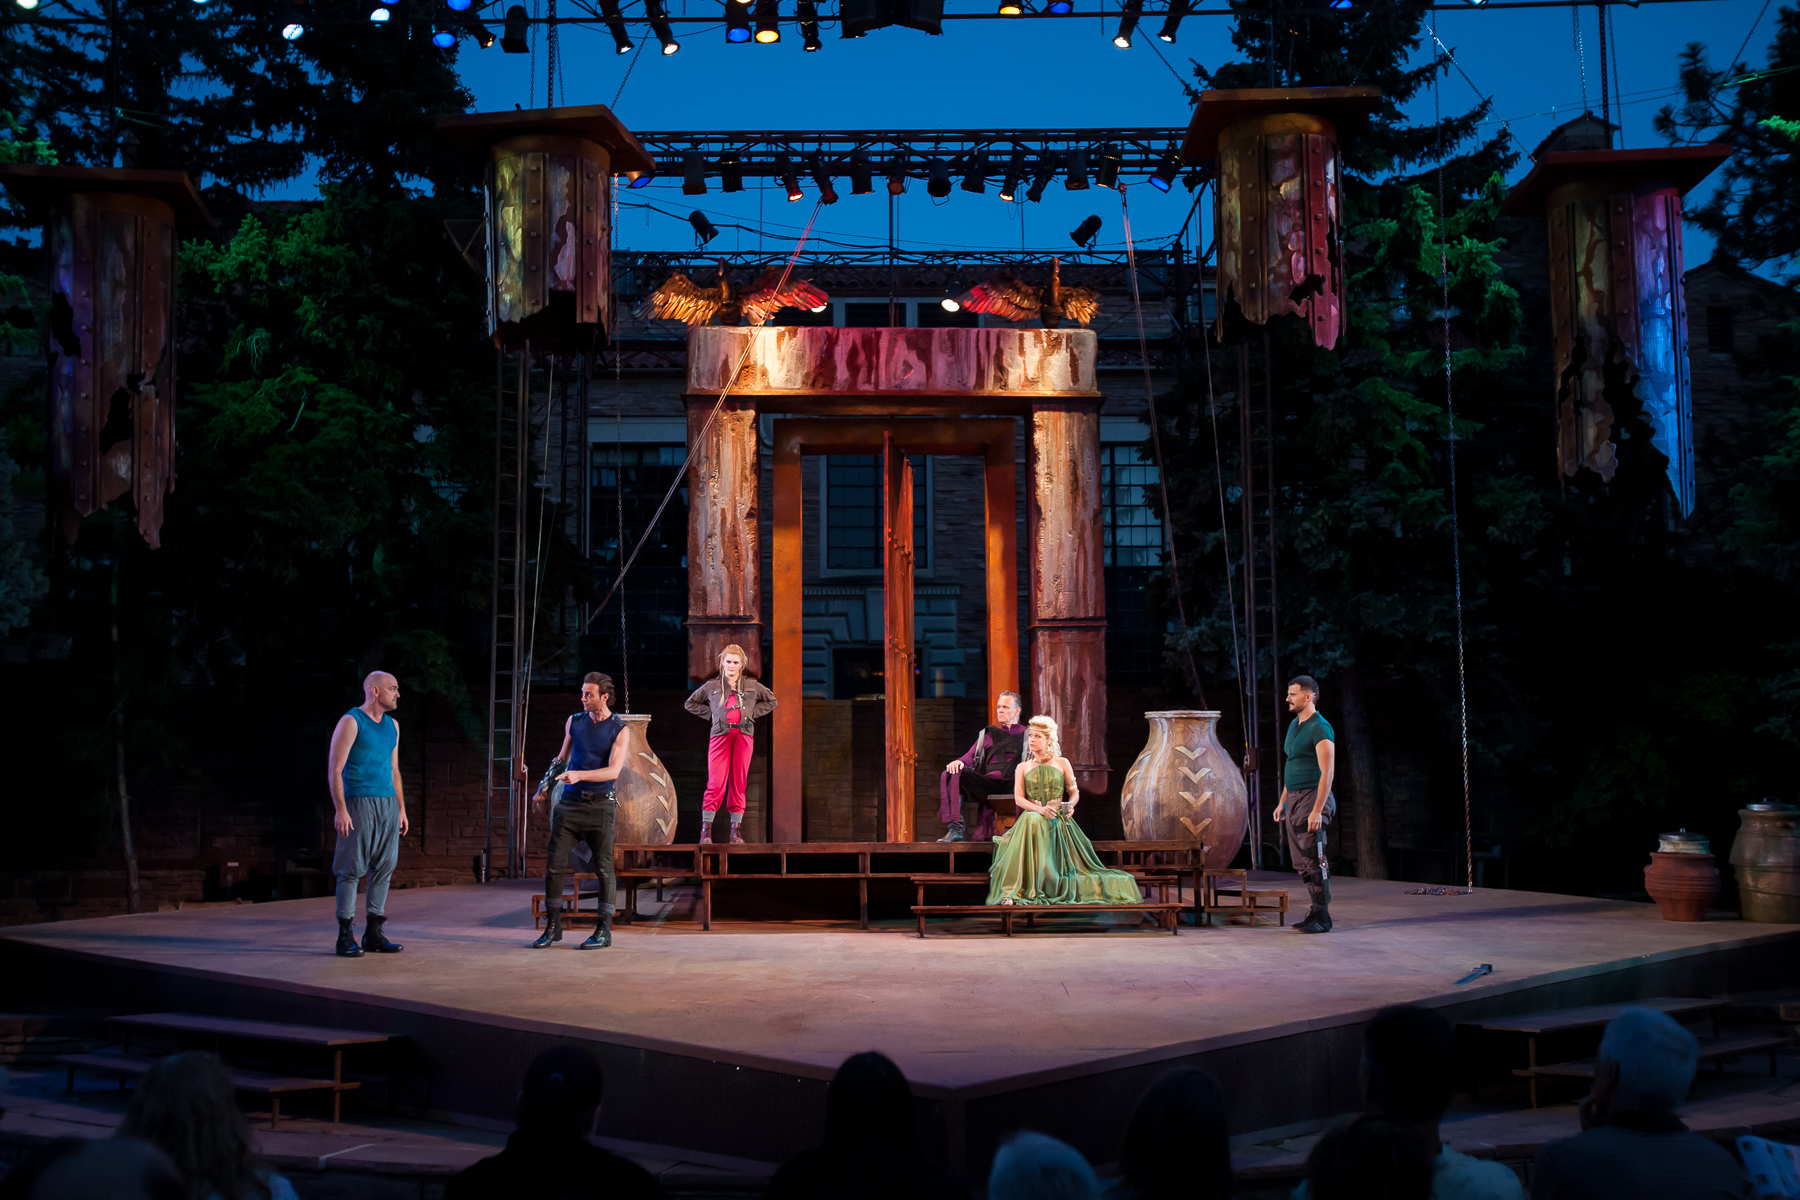 Colorado Shakespeare Festival presents Troilus & Cressida in the Mary Rippon Theatre at University of Colorado, photographed by Gabe Koskinen, Merritt Portrait Studio